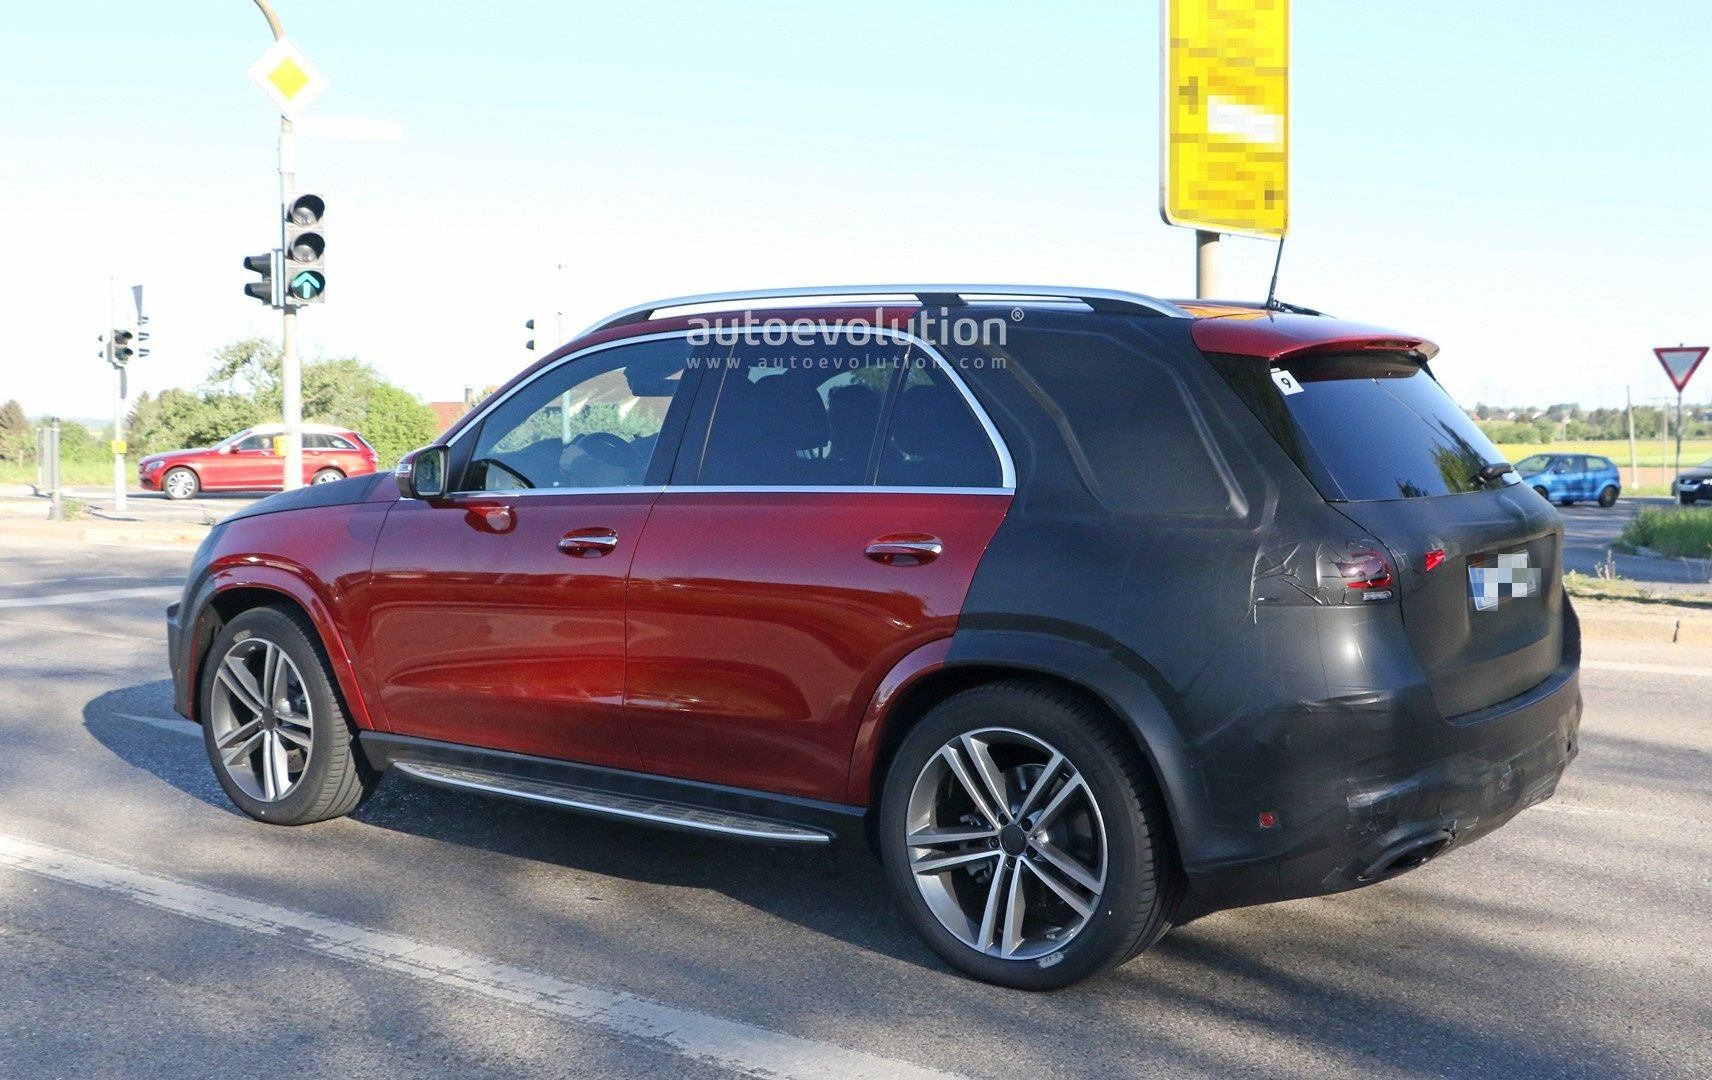 2019 Mercedes GLE-Class Shows Uncamouflaged Design of Sexy ...